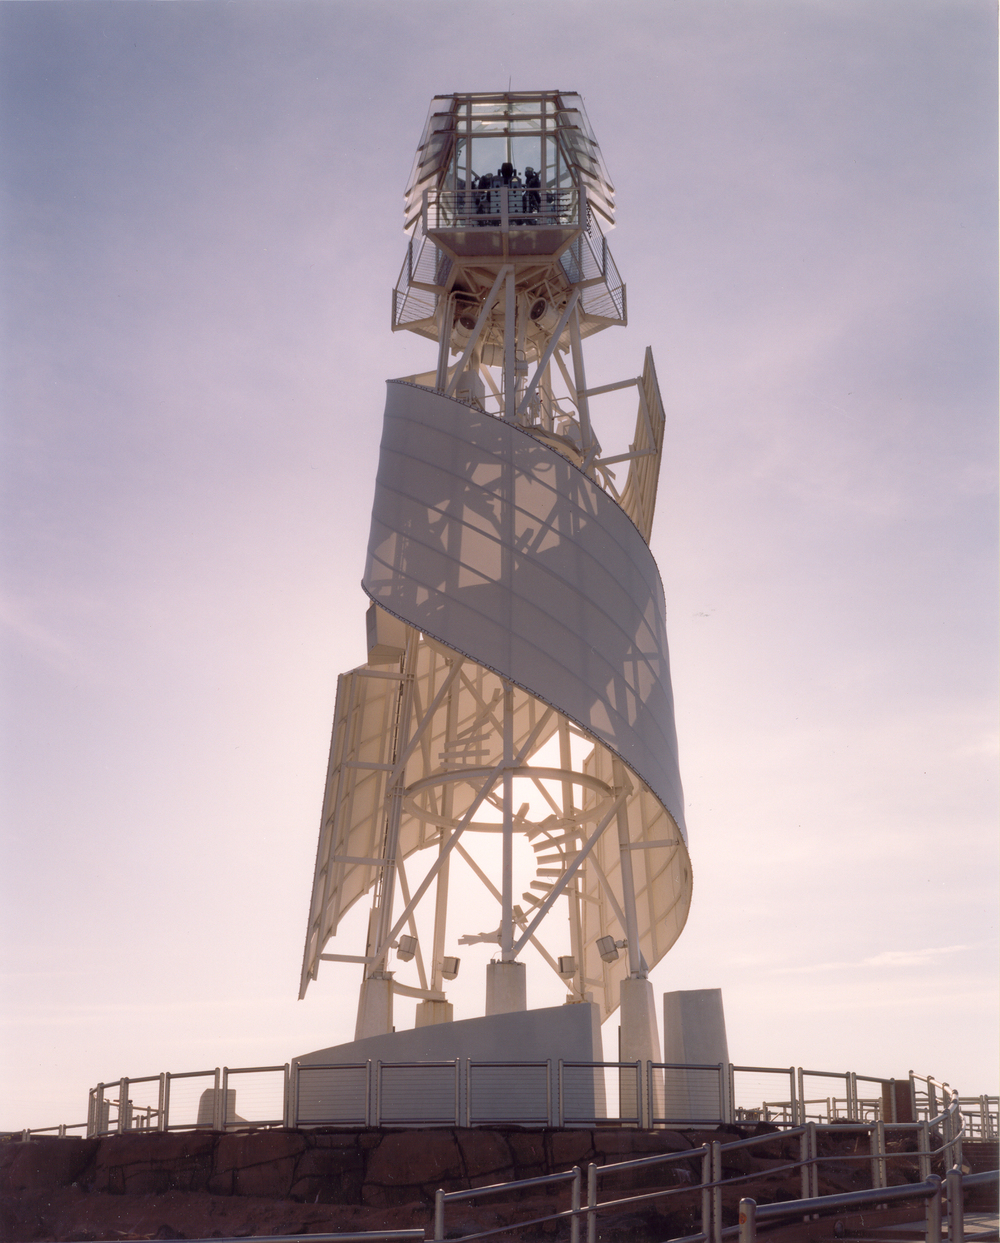 Lighthouse photo 2 (2).jpg